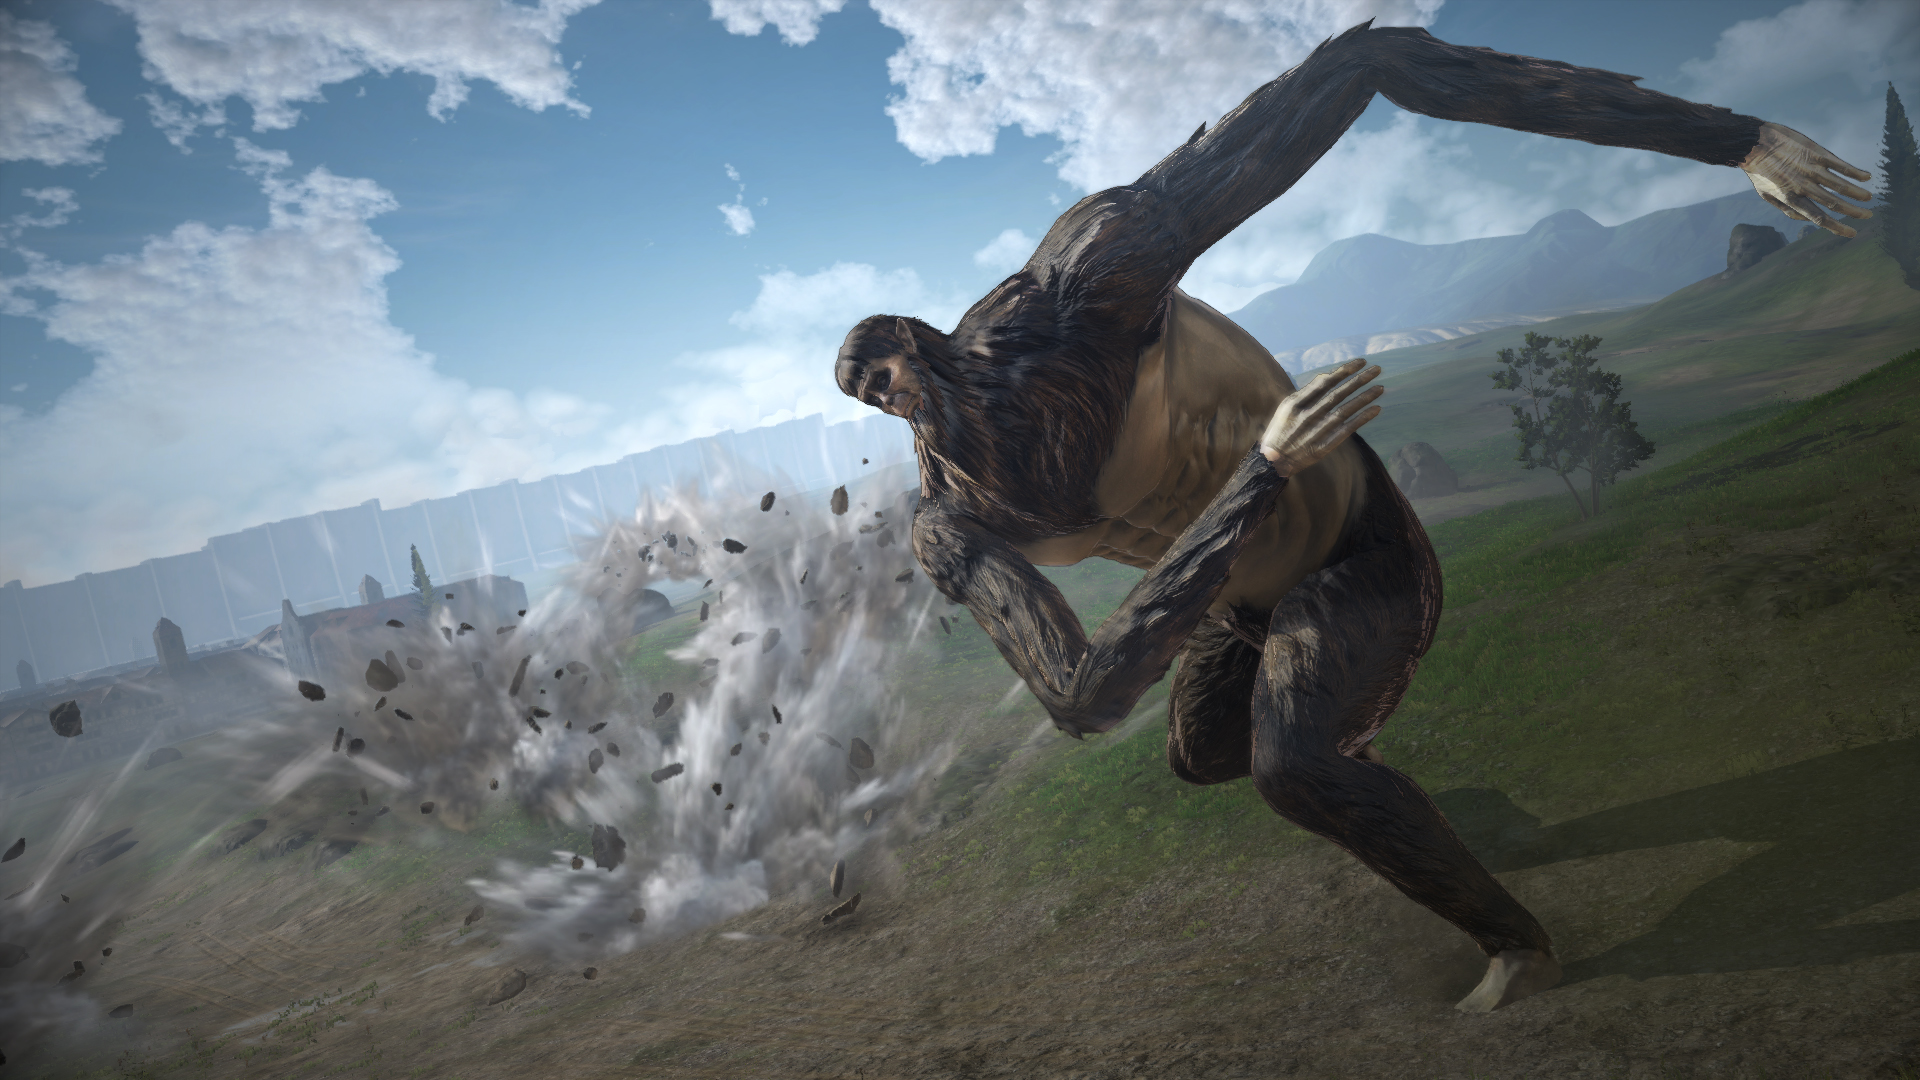 Attack on Titan 2: Final Battle trailers shows new features | RPG Site